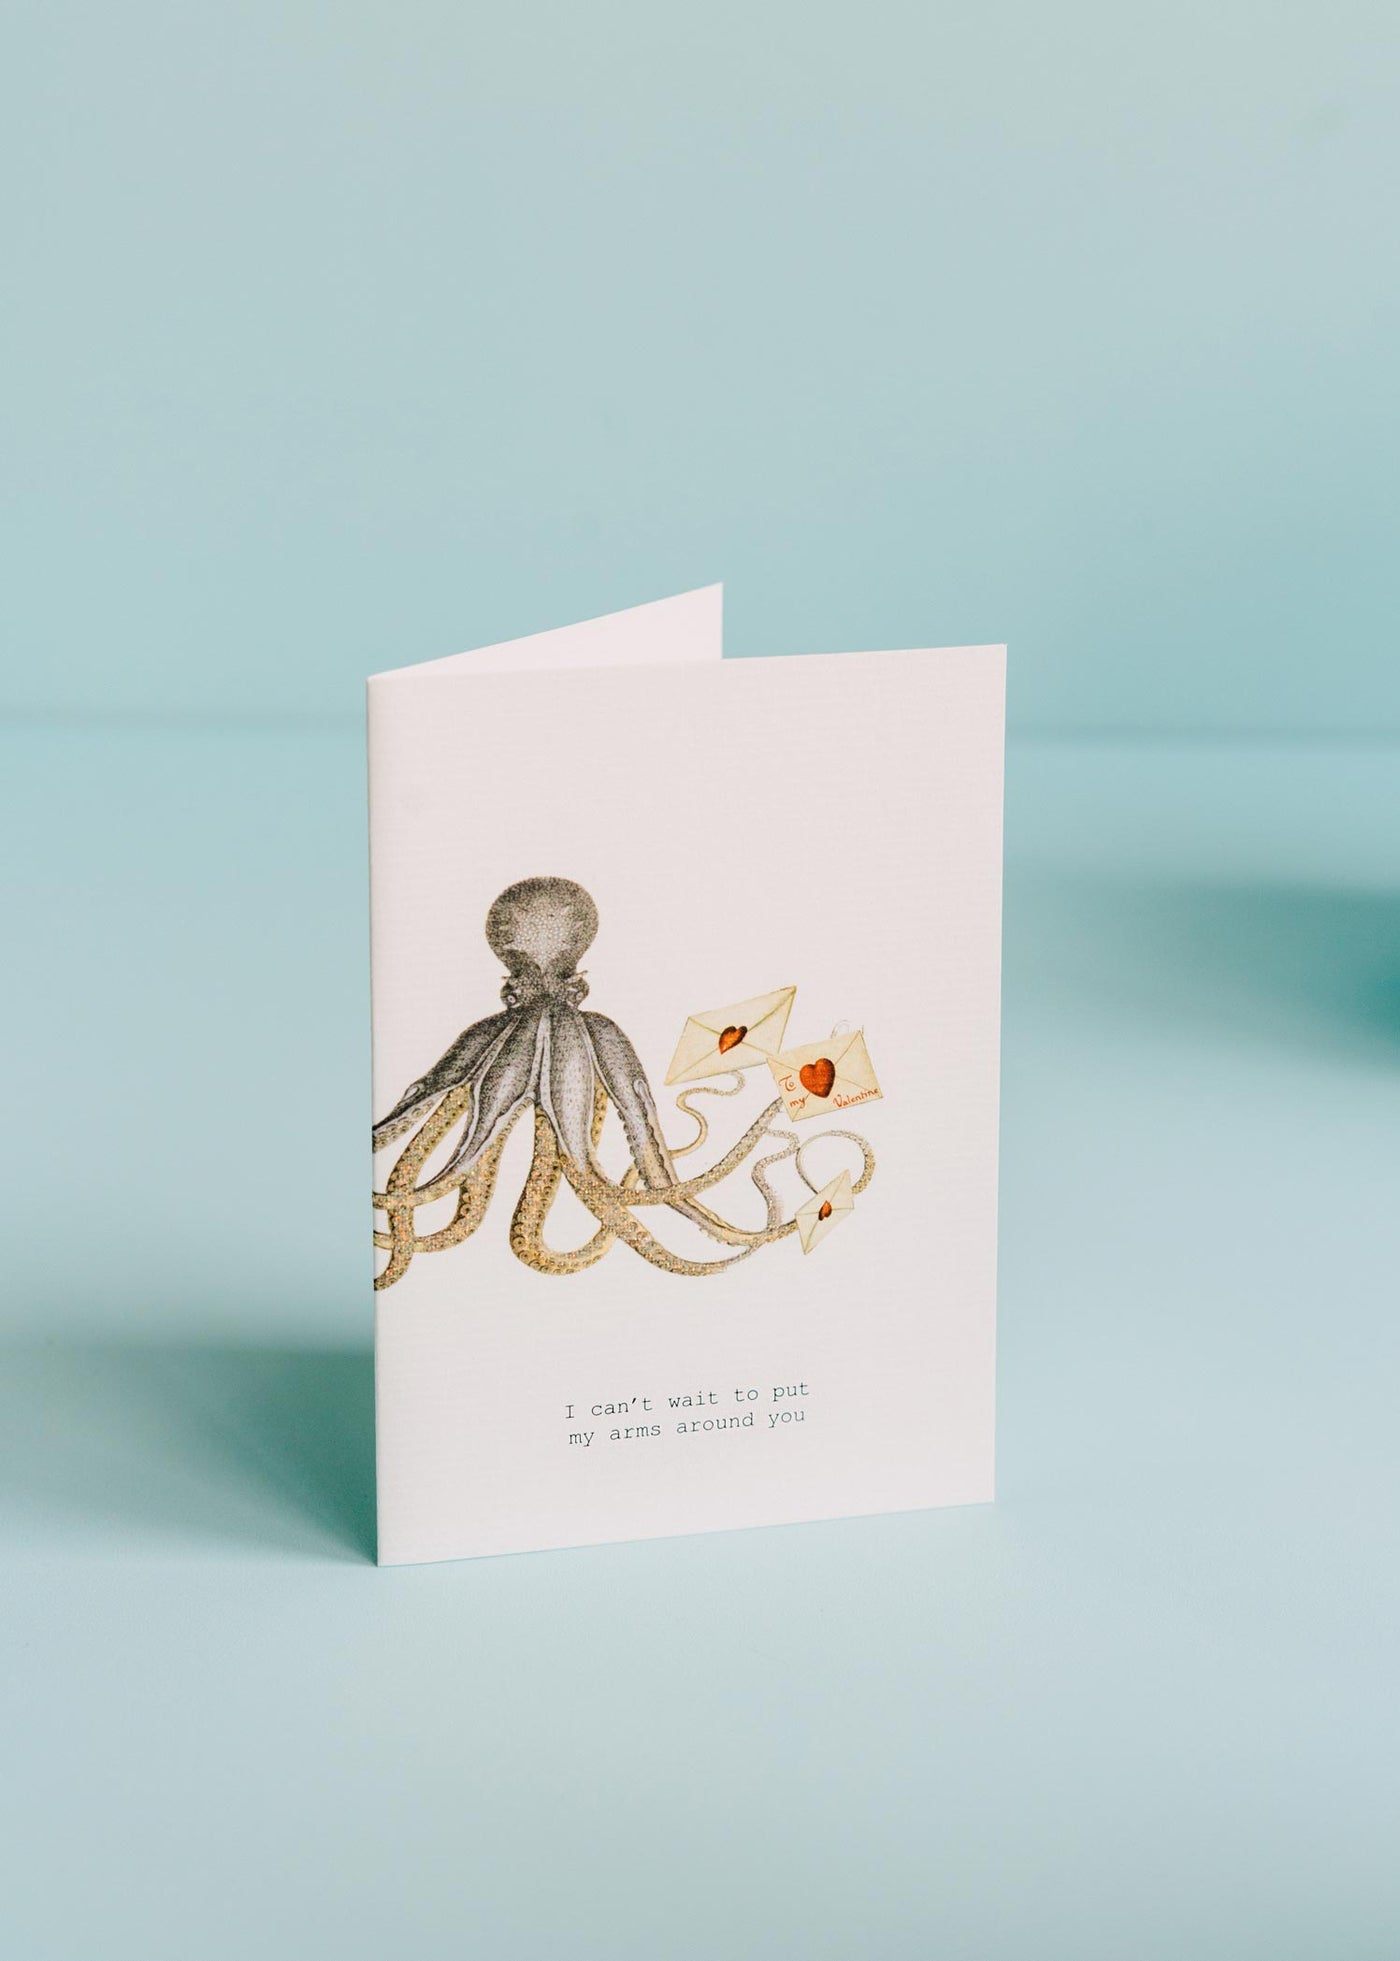 Can't Wait to Put My Arms Around You Greeting Card